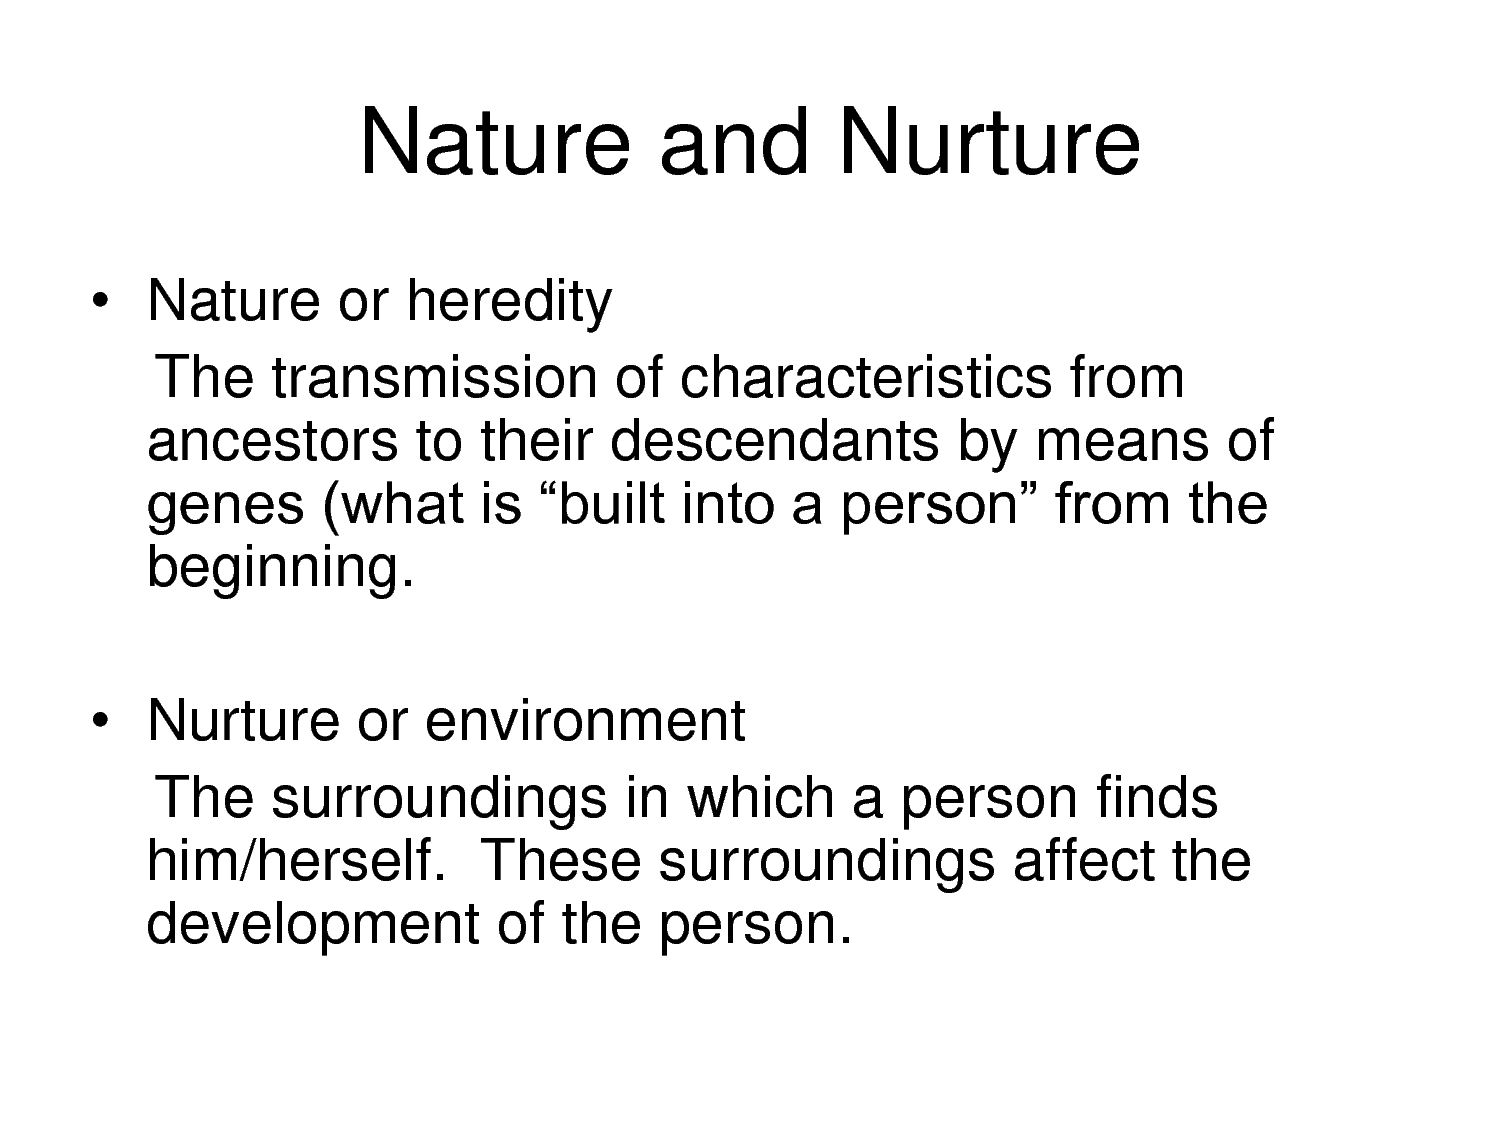 nurture nature essay Do you know what a nature vs nurture essay stands for if no, this article is full of valuable information and ideas to include in your future writing.